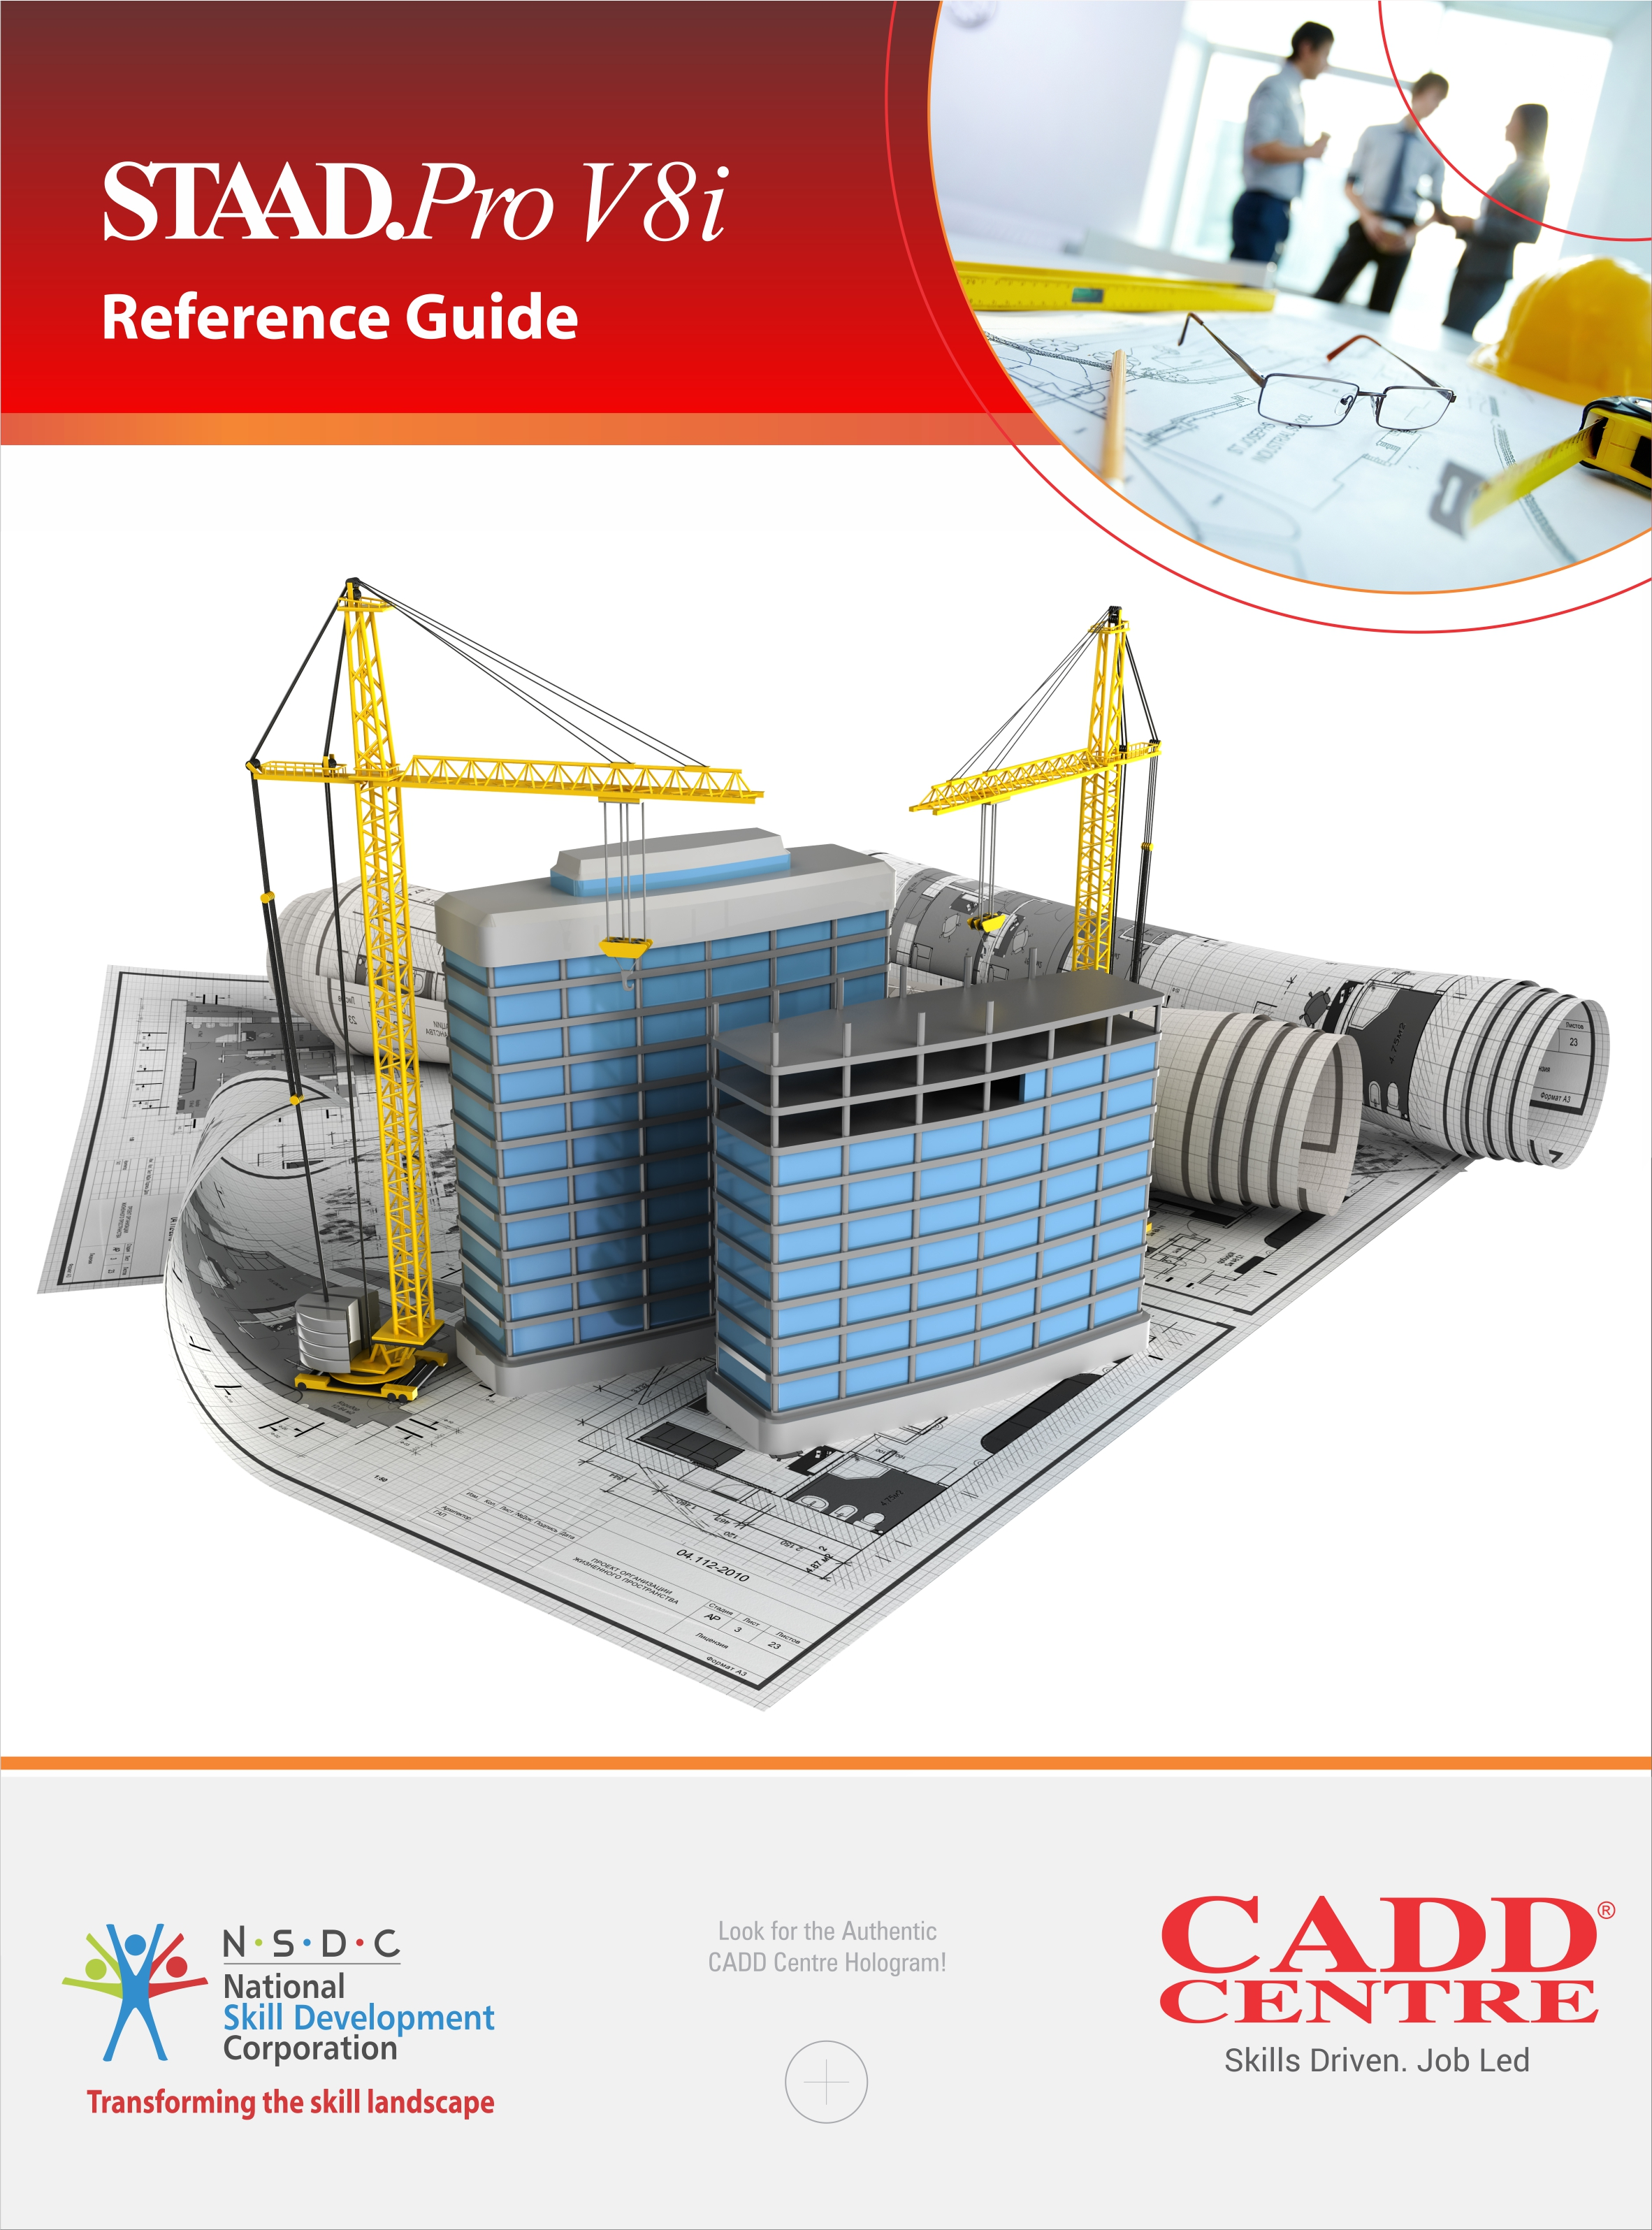 STAAD.Pro V8i Reference Guide